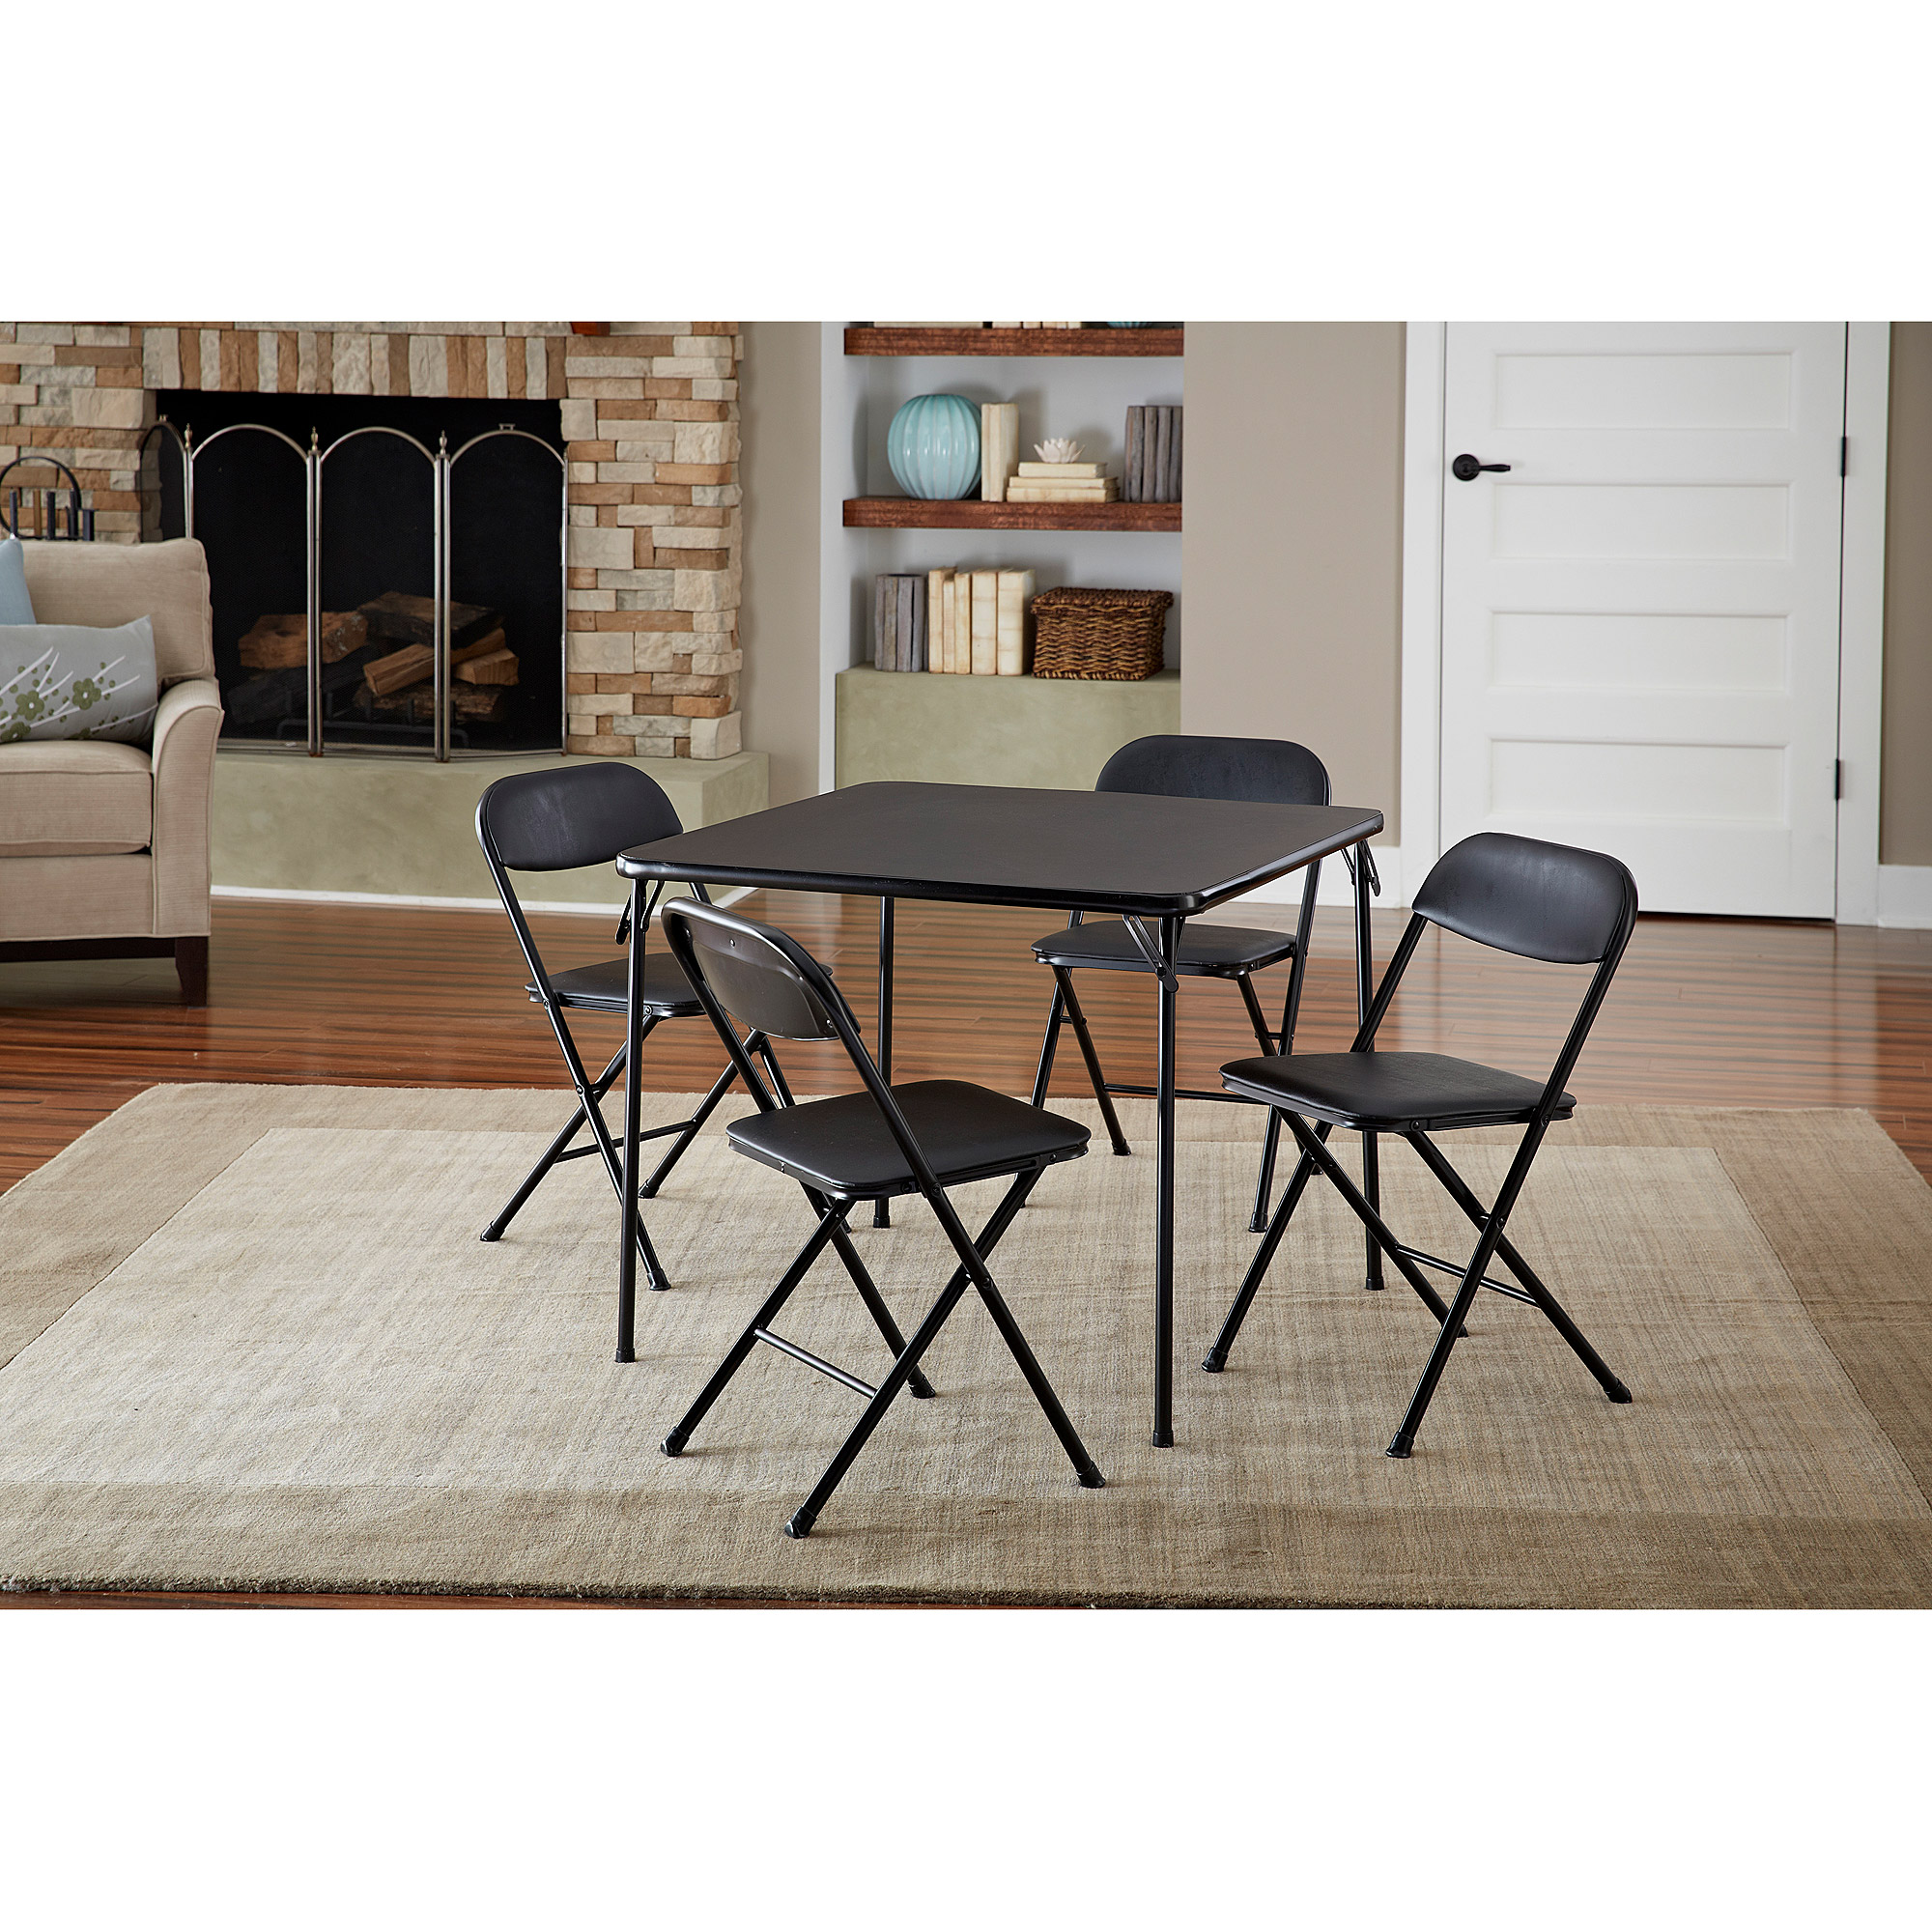 Majestic folding table and chairs set cosco 5-piece card table set, black - walmart.com tktpang